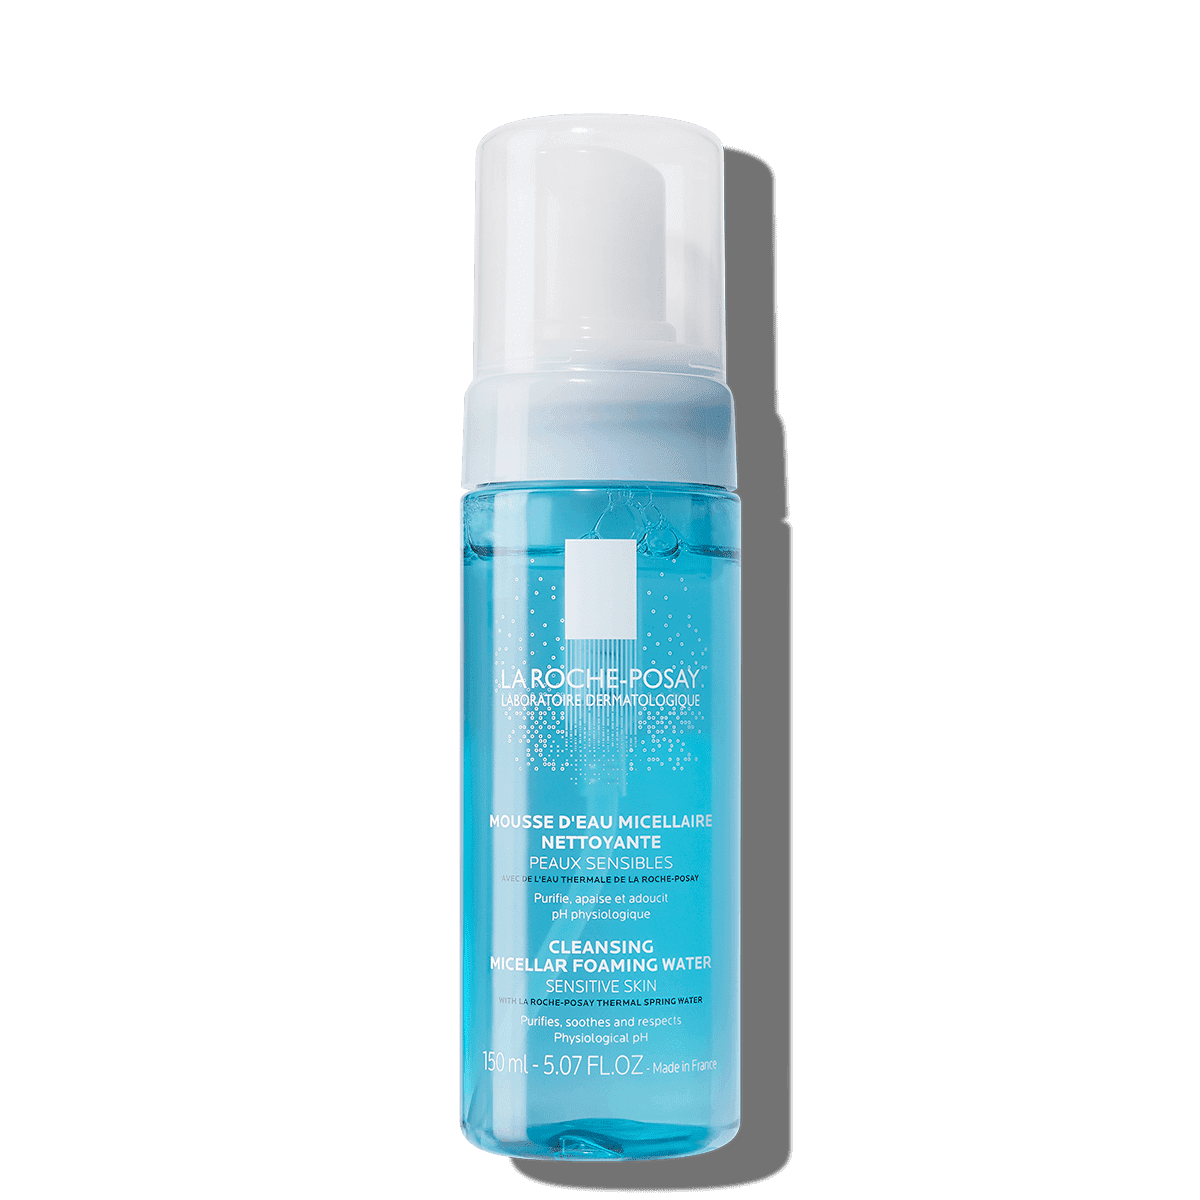 La Roche Posay ProductPage Face Cleanser Physiological Foaming Water 1